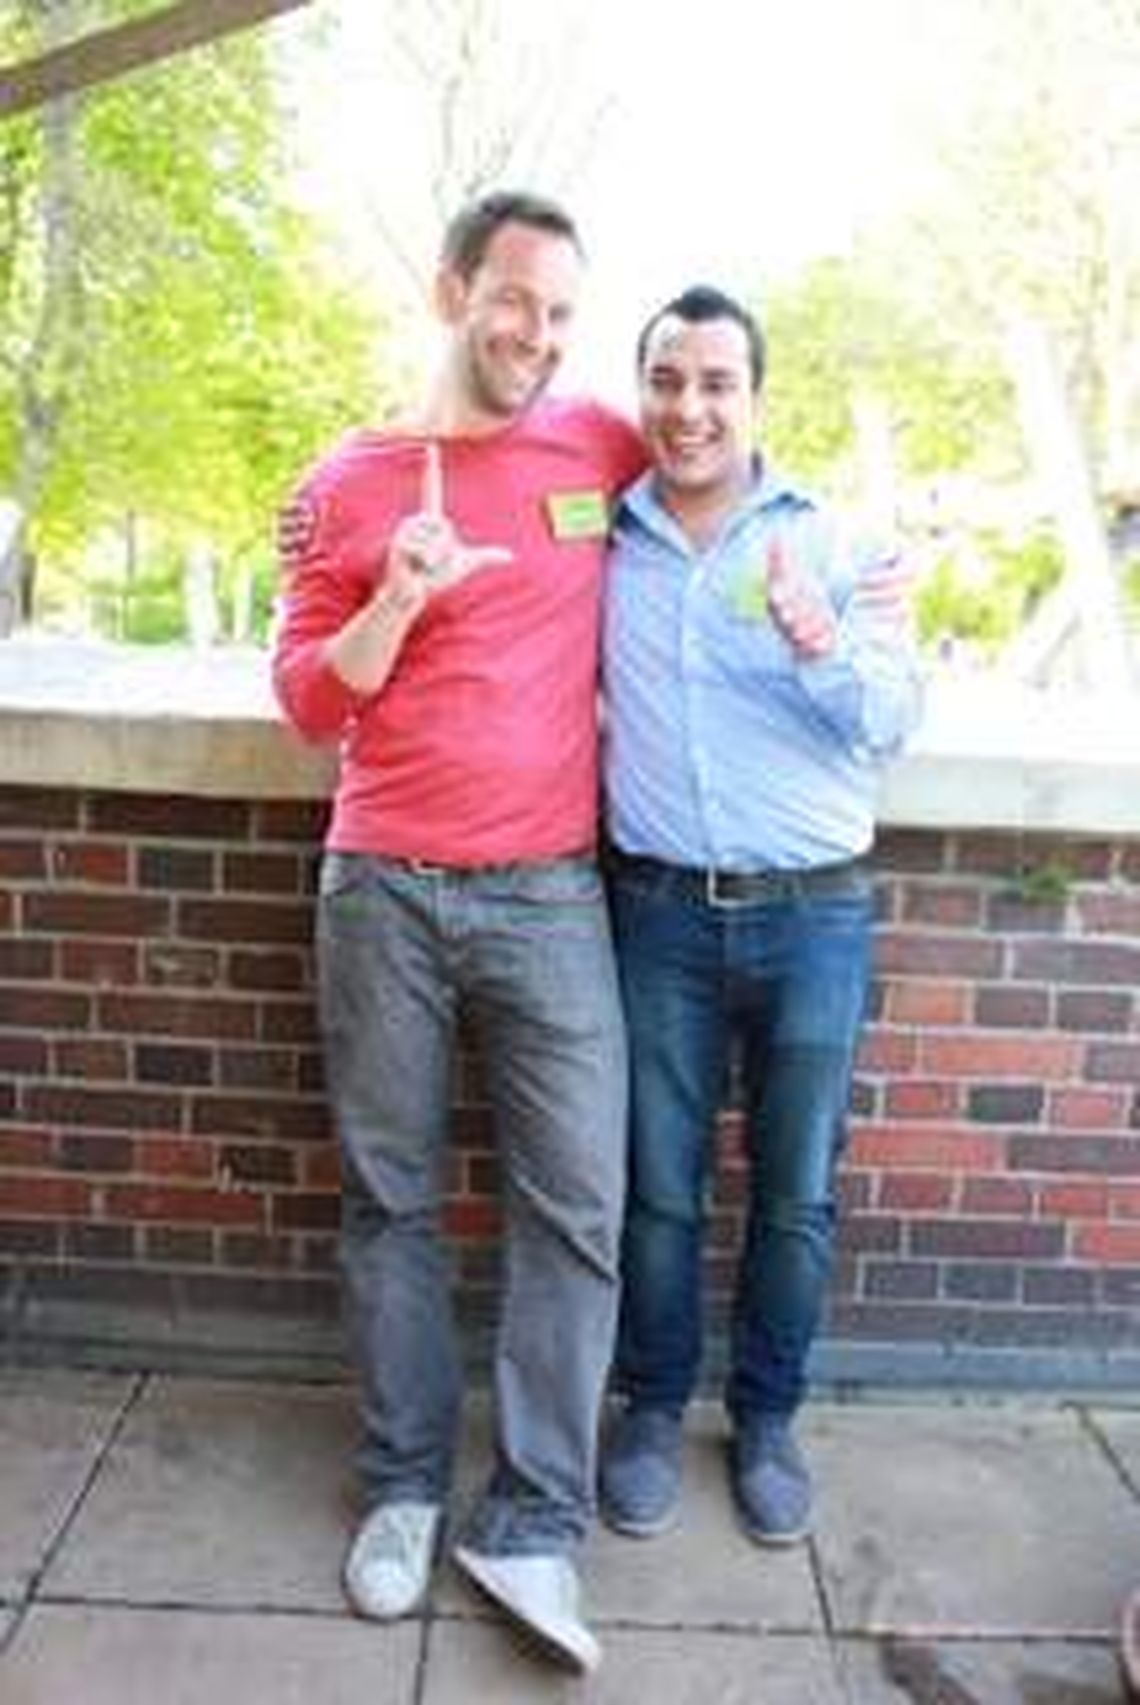 Let's integrate! co-founders Lasse Landt and Khaled Alaswad